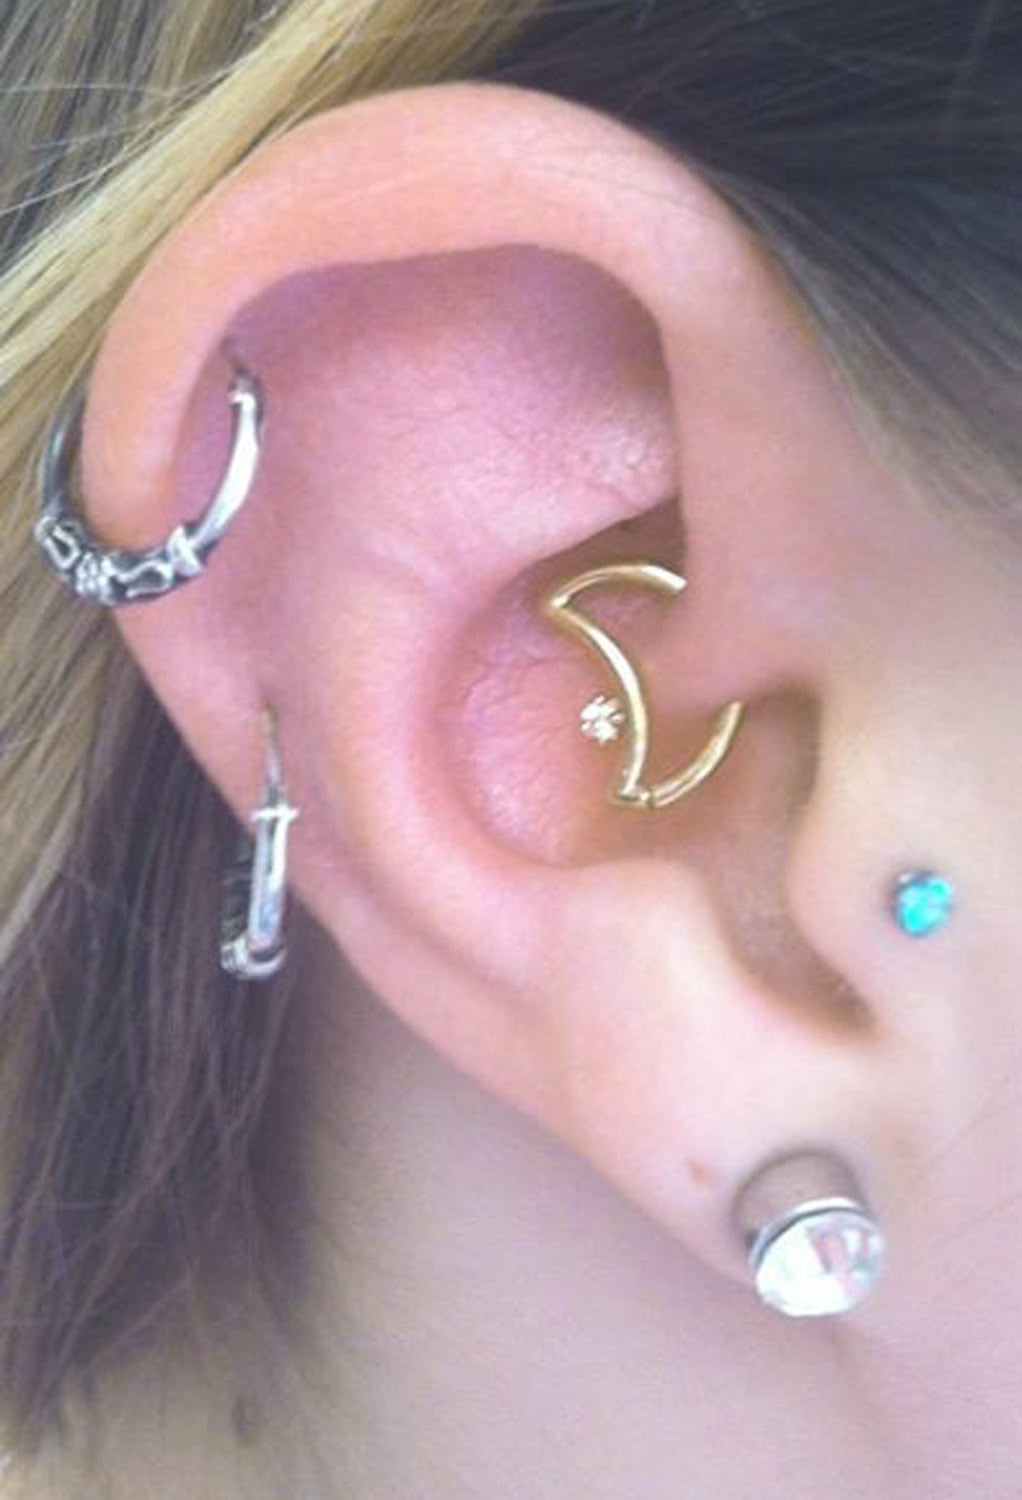 Most Gorgeous Multiple Ear Piercing Ideas at MyBodiArt.com - Cartilage Piercing Hoop, Moon Rook Earring, Tragus Stud, Helix Ring